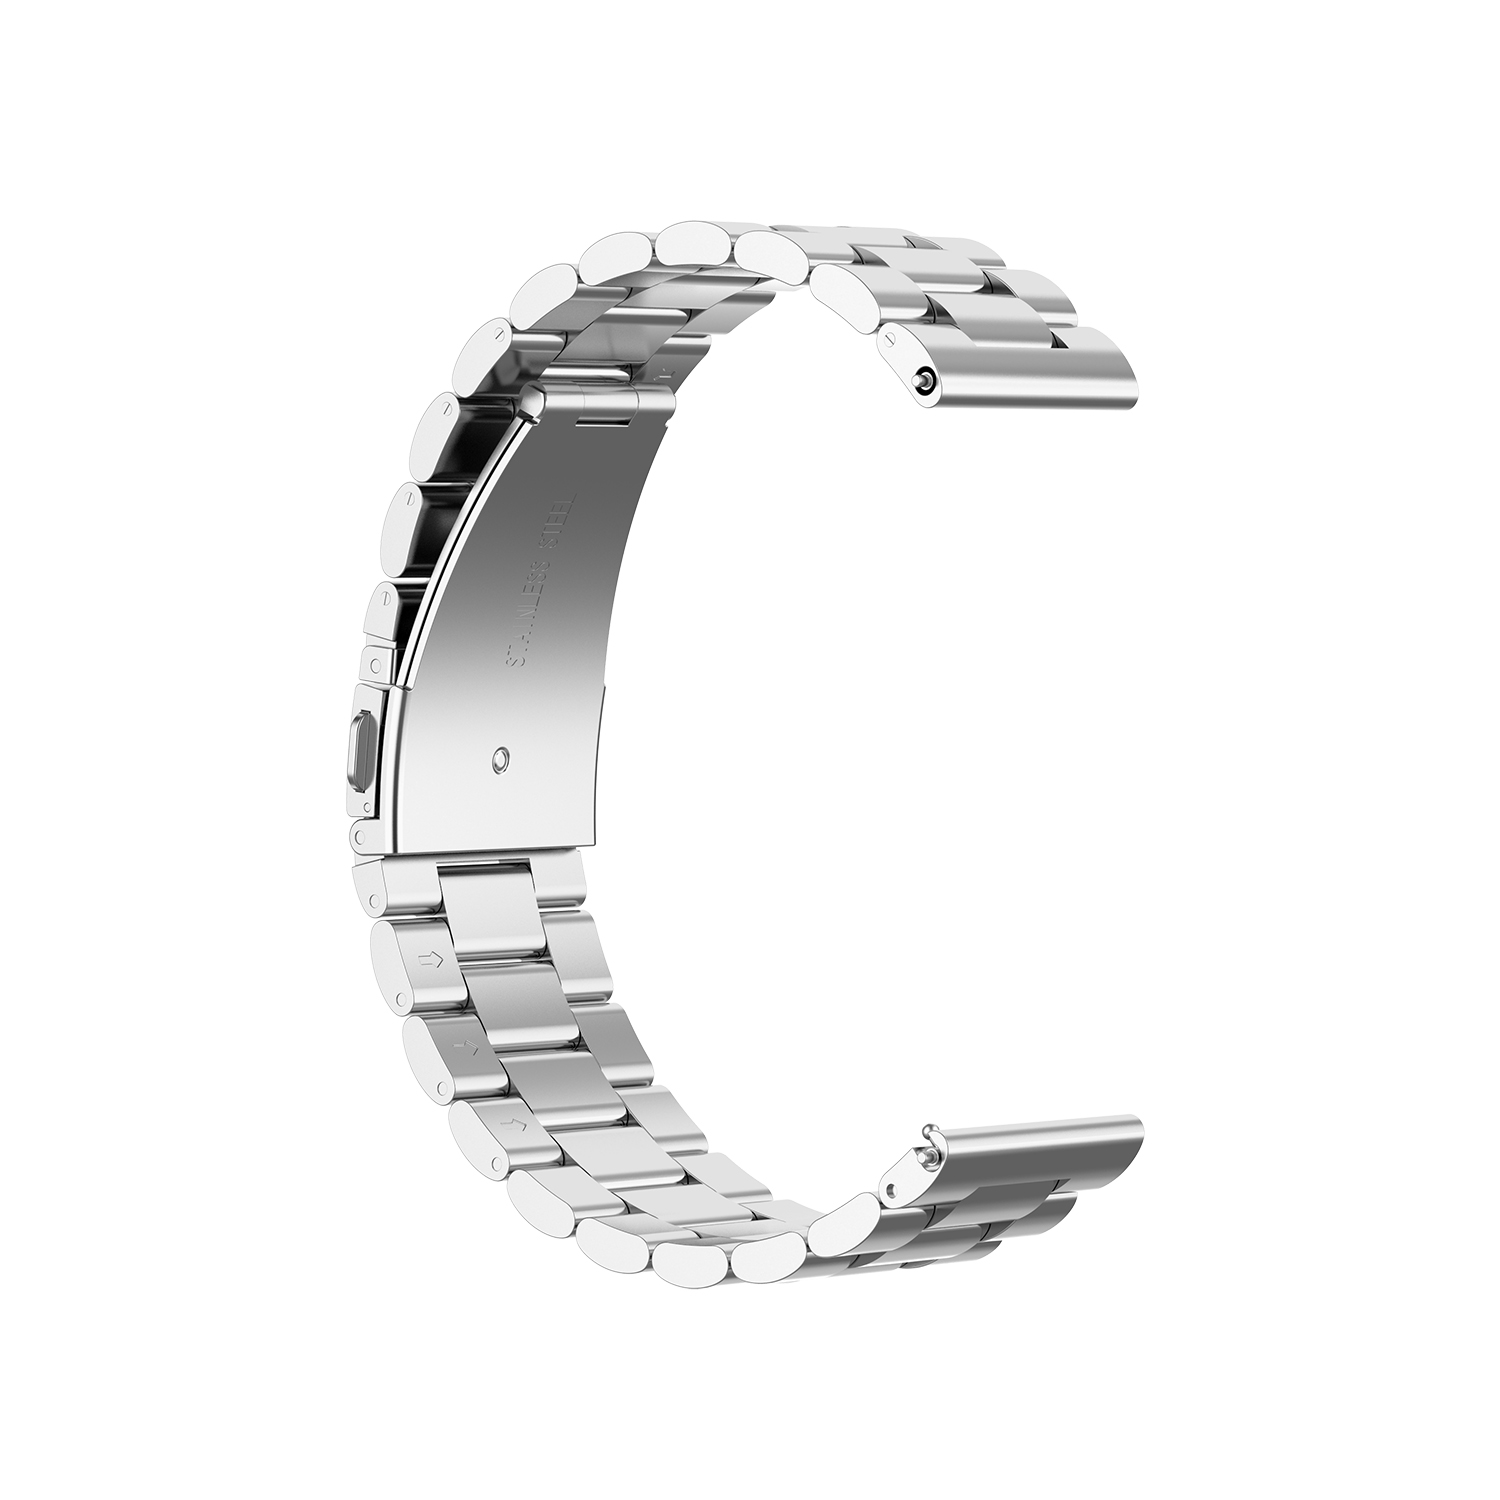 Bakeey 20MM Stainless Steel Watch Band For Huawei WATCH GT 2 42MM/Honor WATCH 2 42MM